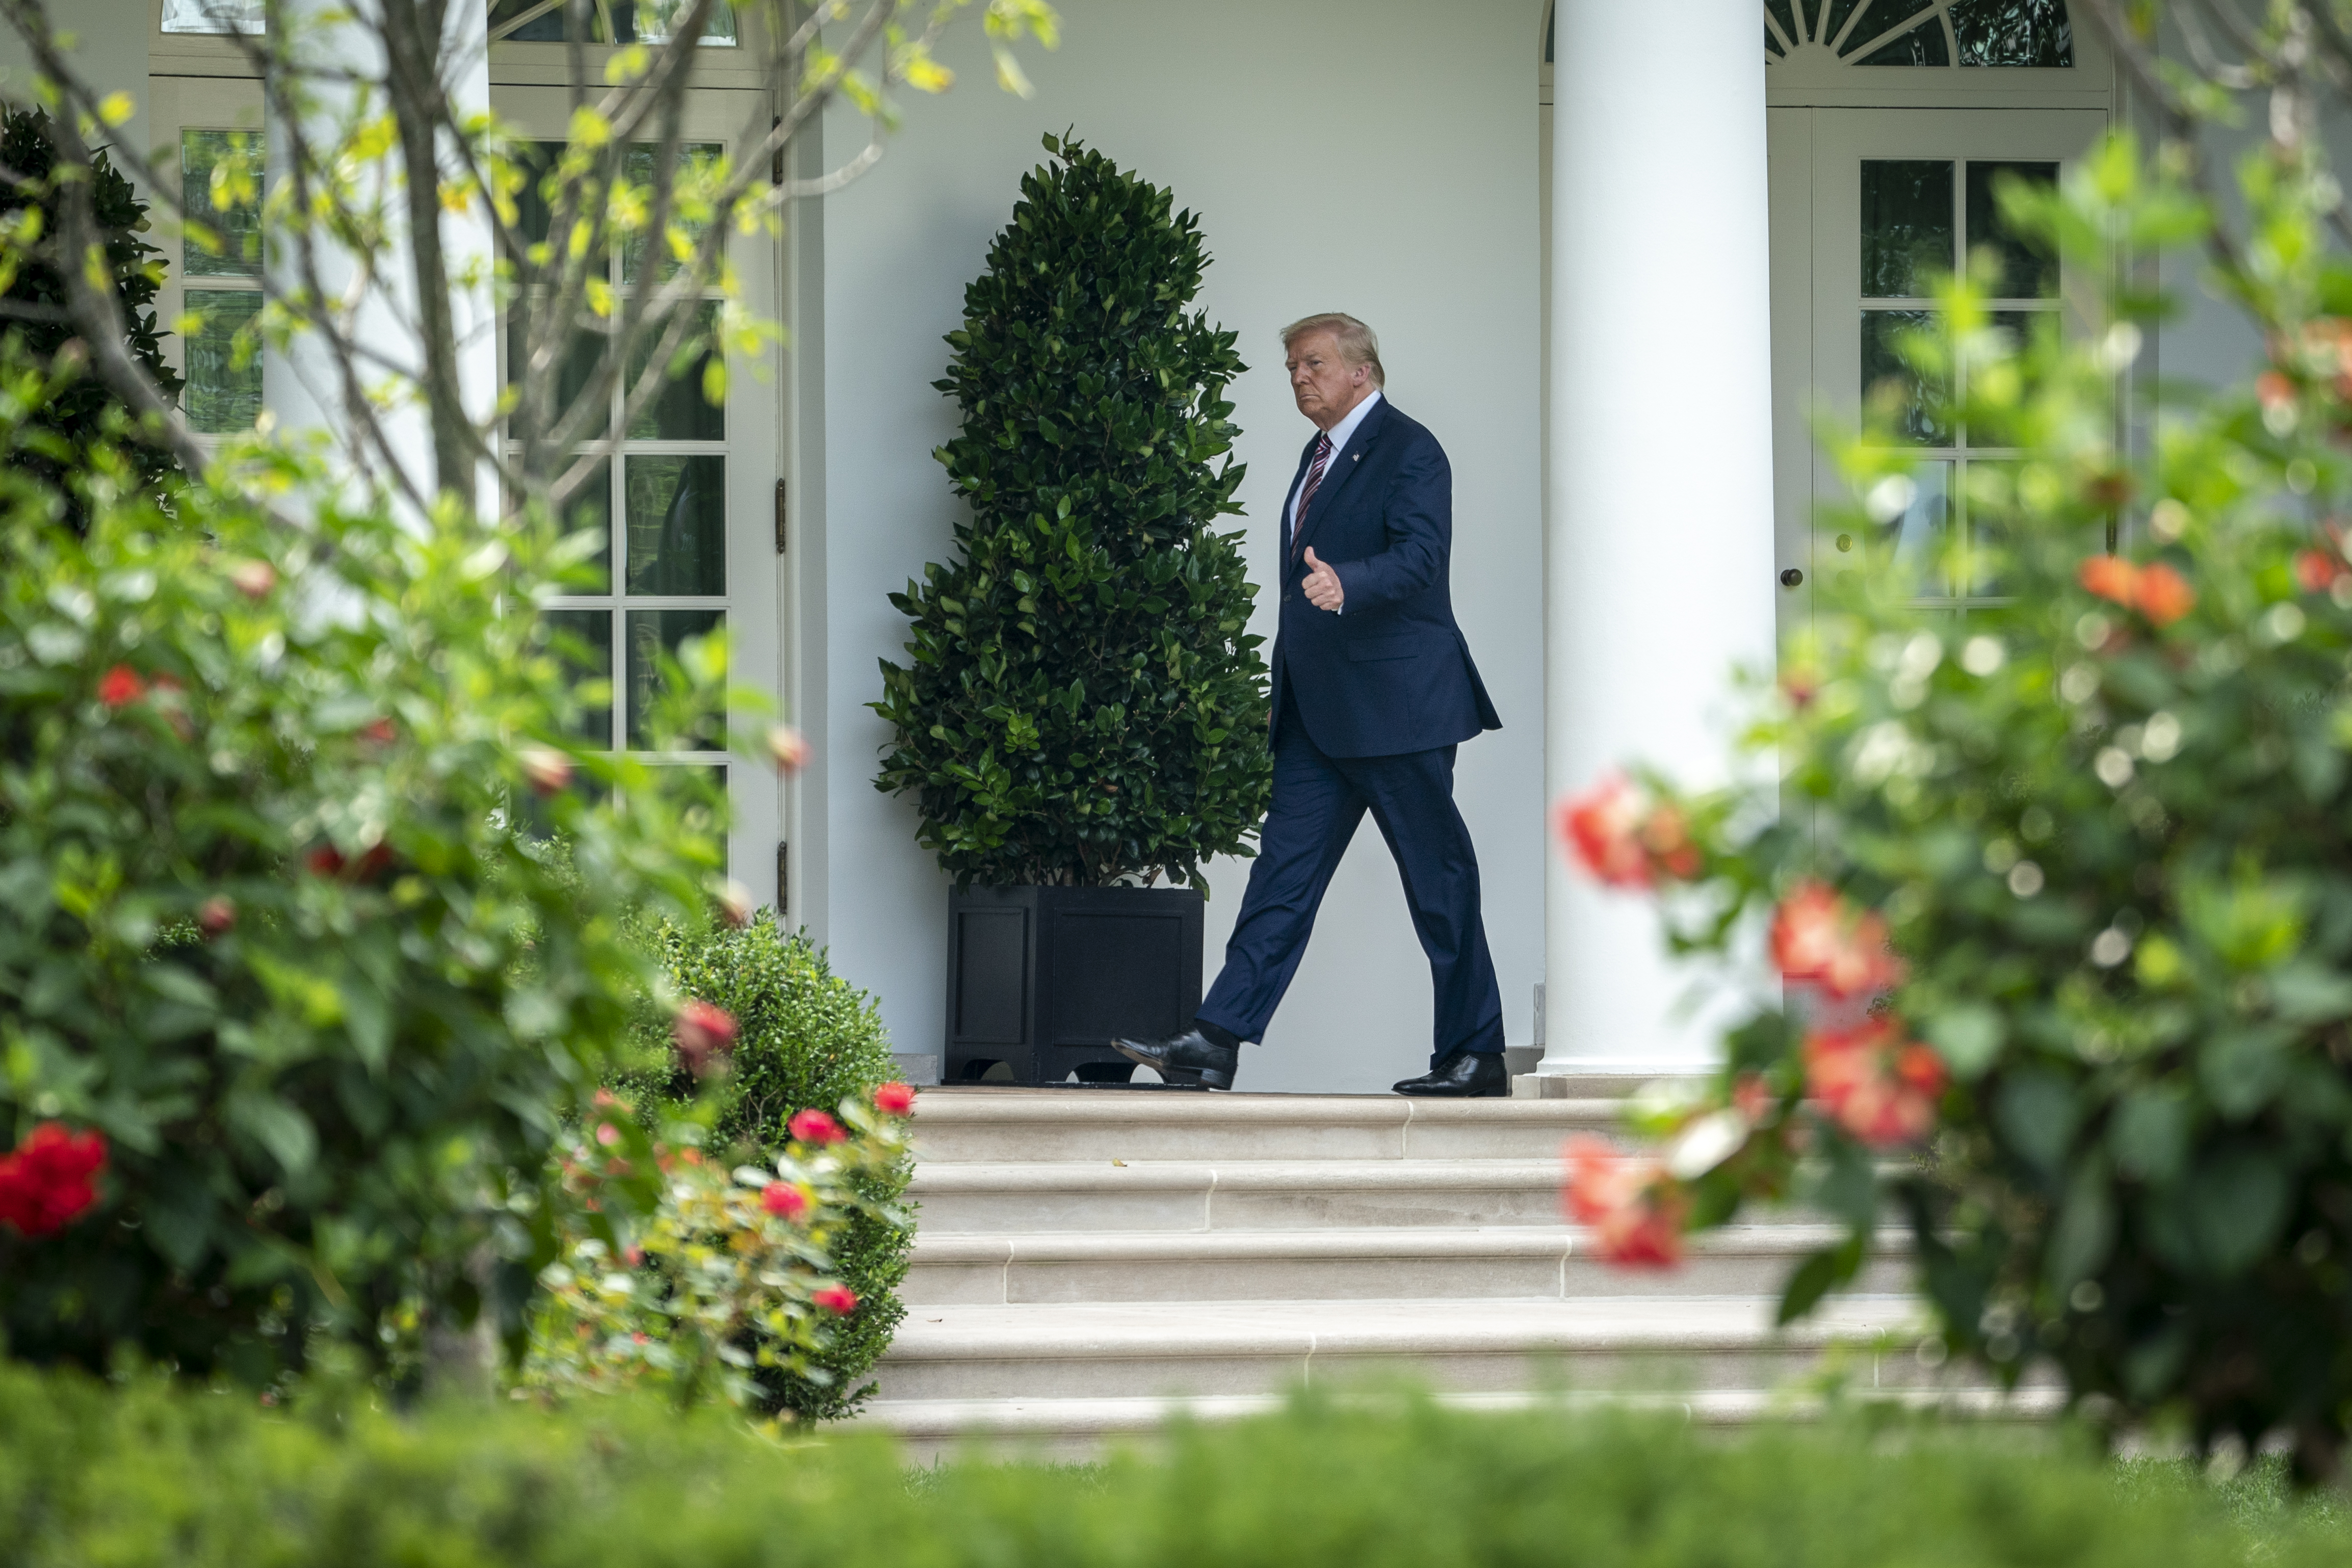 WASHINGTON, DC - JULY 16: U.S. President Donald Trump walks to the Oval Office after an event about regulatory reform on the South Lawn of the White House on July 16, 2020 in Washington, DC. On Wednesday, President Trump announced a rollback of the National Environmental Policy Act. The administrations changes to the law aim to decrease the number of infrastructure projects that will be subject to federal NEPA review, hoping to shorten long permit processes and speed up approval. (Photo by Drew Angerer/Getty Images)